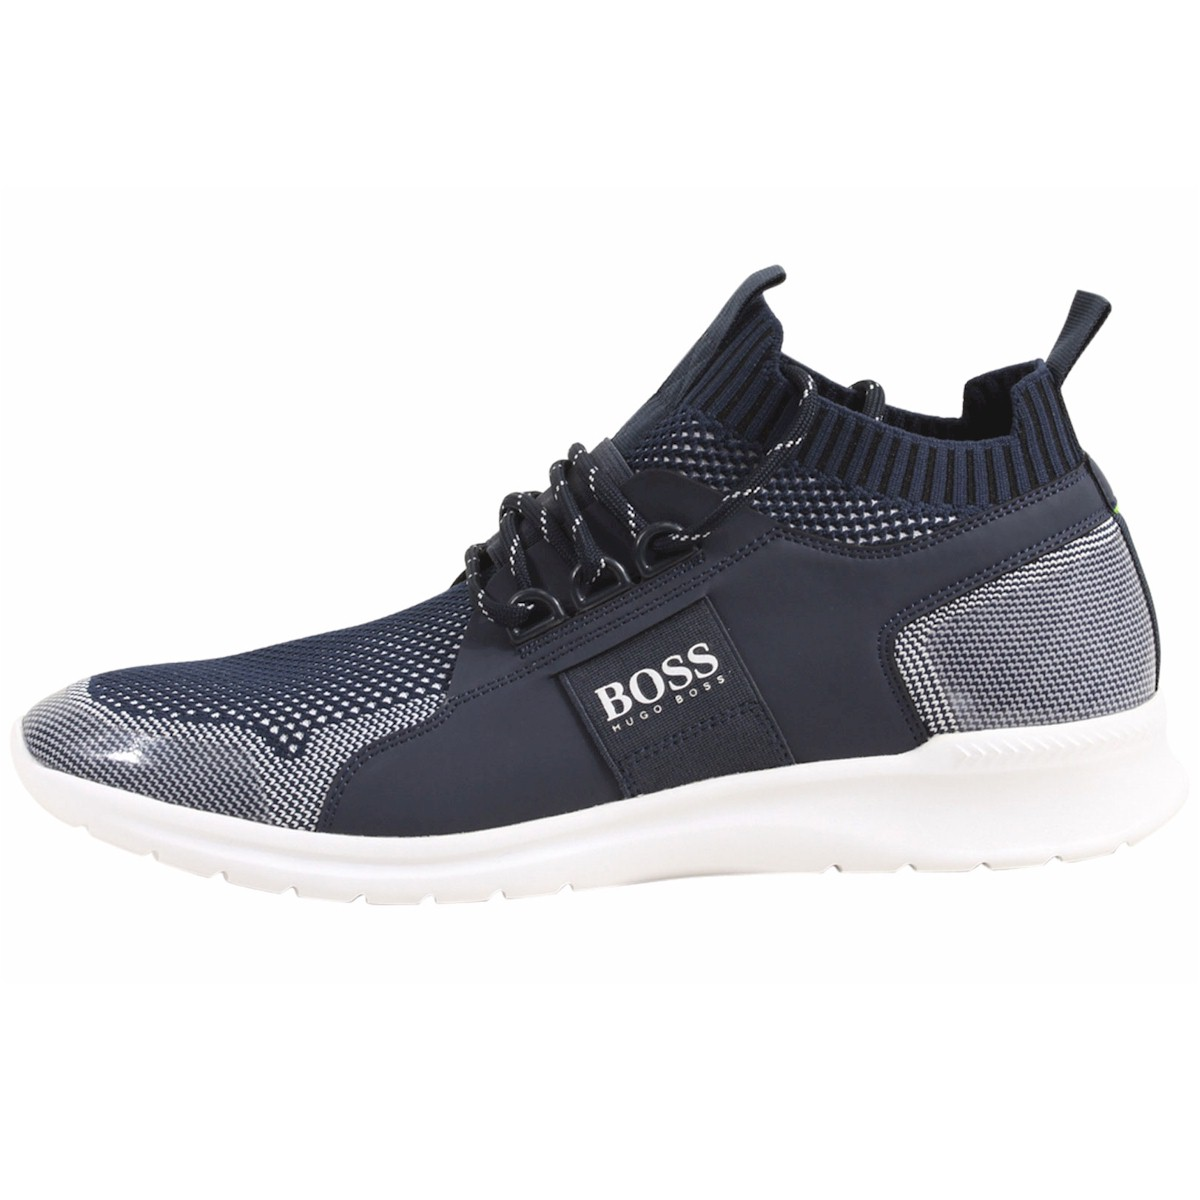 Hugo Boss Sneakers Hugo Boss Men 39s Extreme Running Sneakers Shoes Ebay